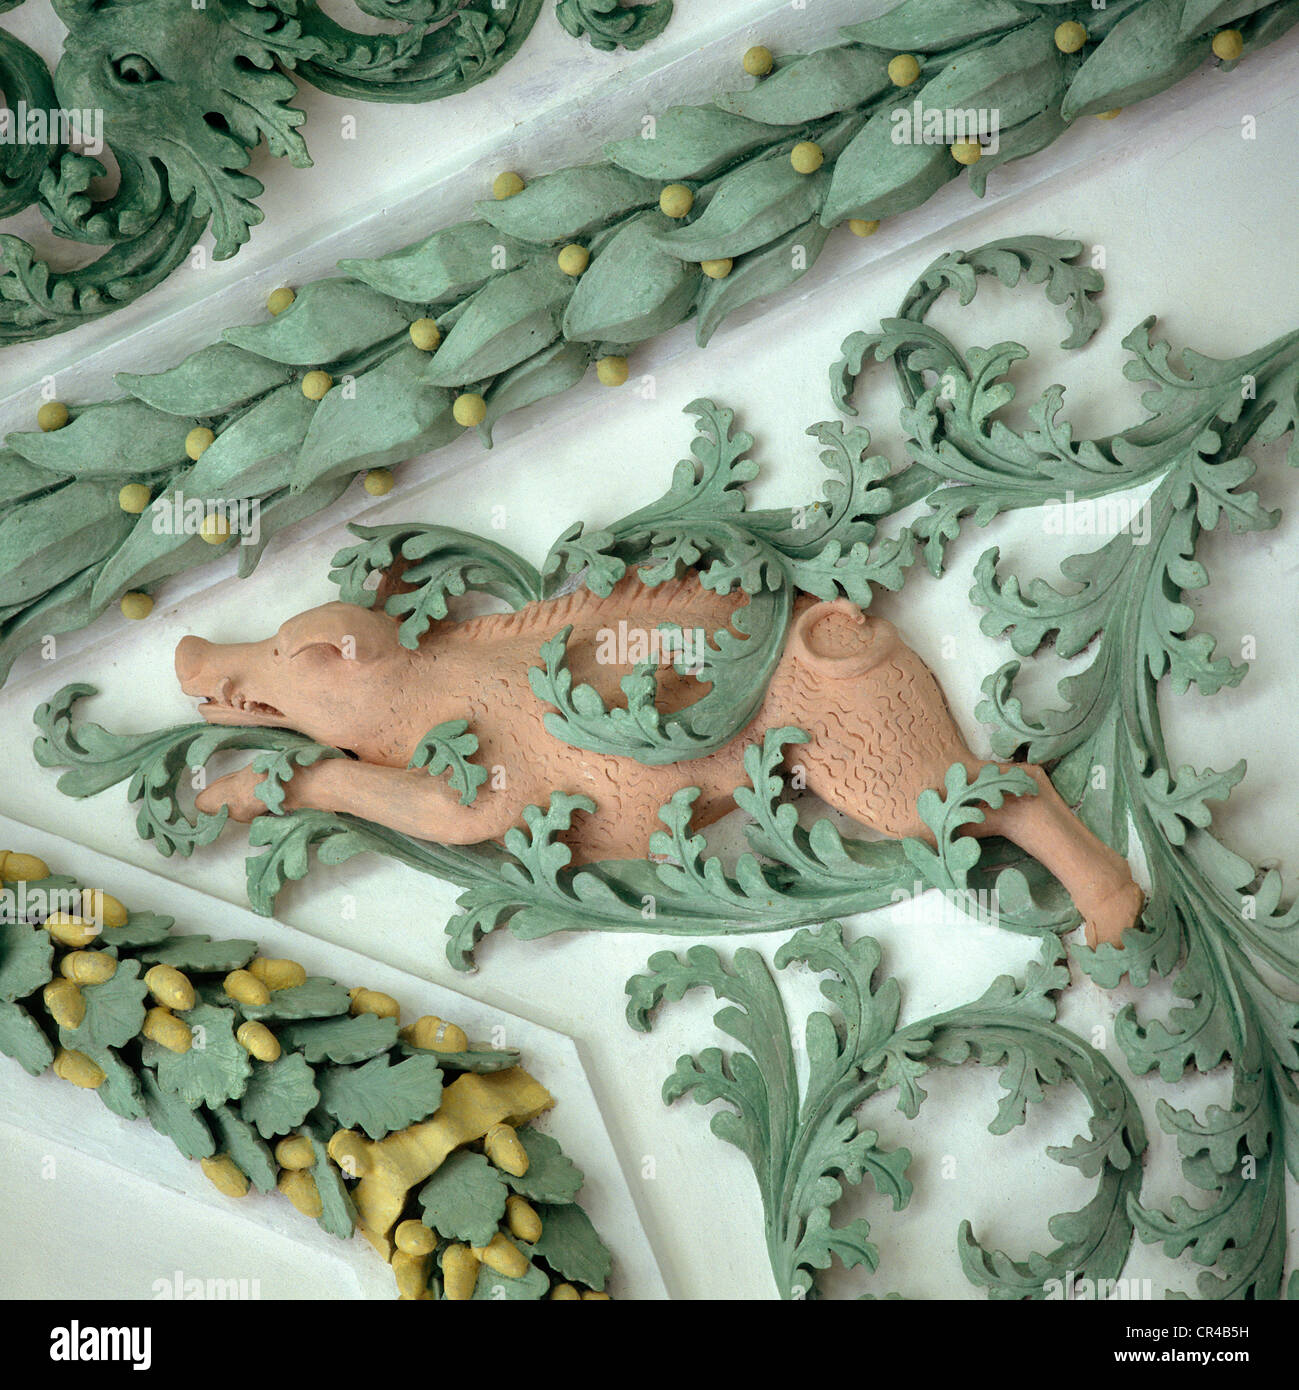 Wild boar, stucco J. Schmuzer, 1685-1690, Tassilo Hall, Wessobrunn, Upper Bavaria, Bavaria, Germany, Europe - Stock Image